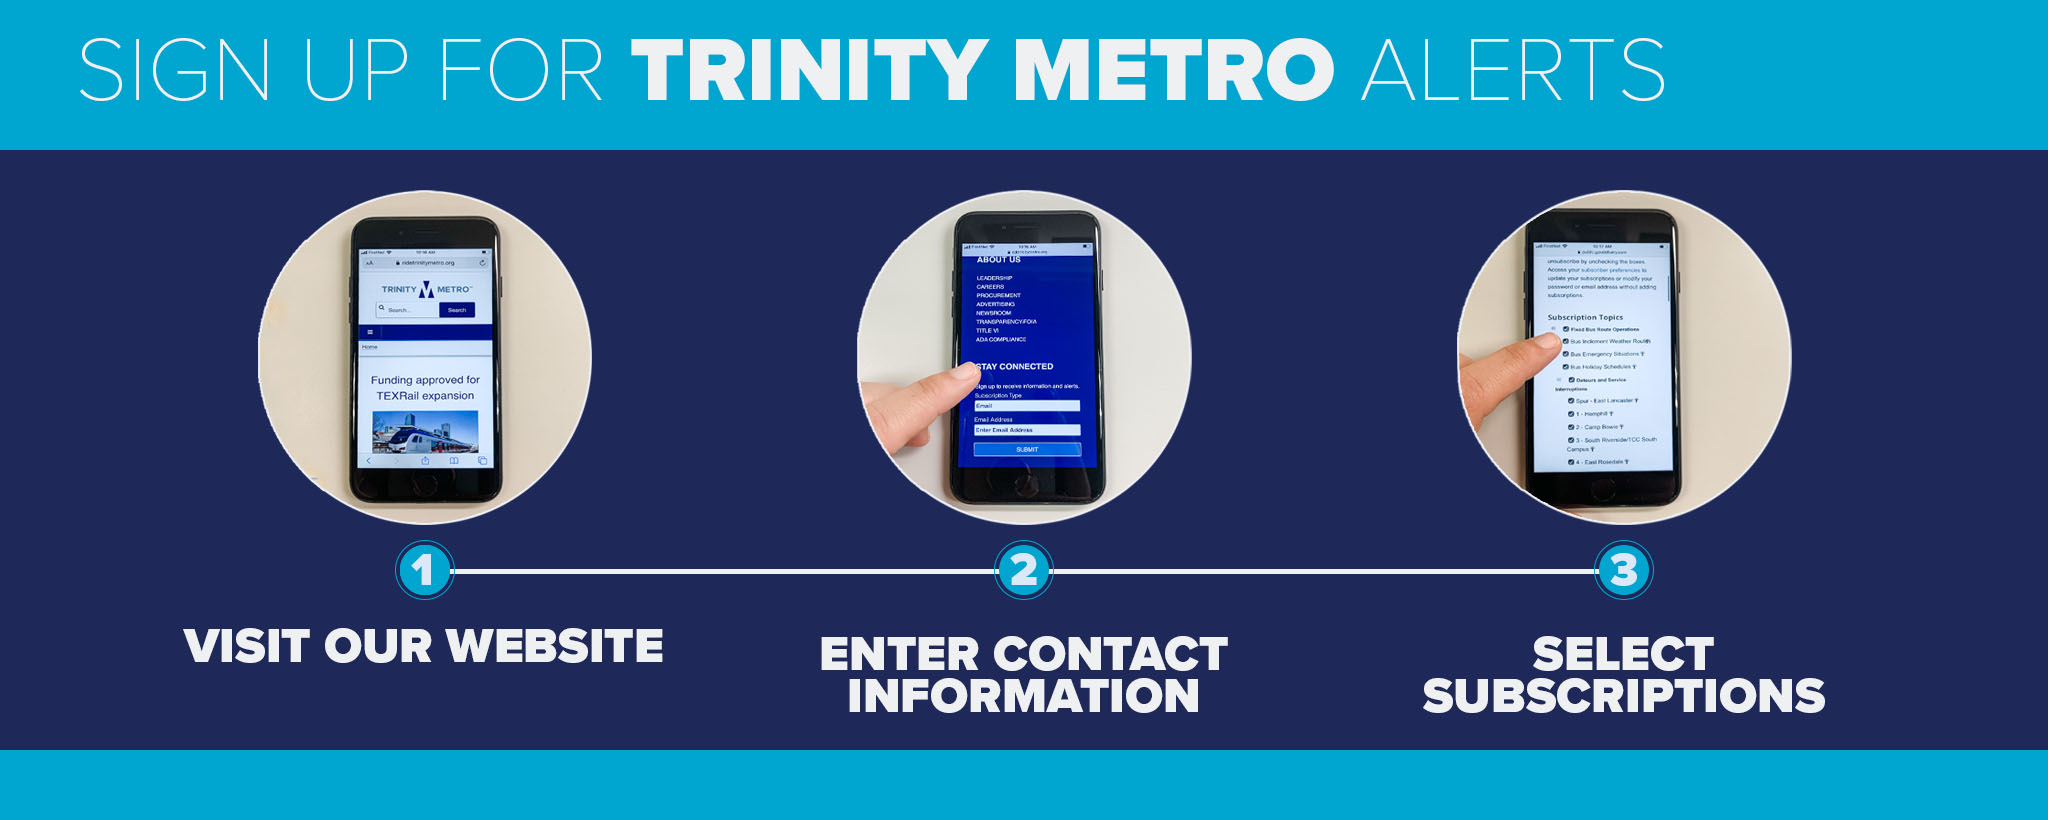 Signing up for alerts Trinity Metro blog